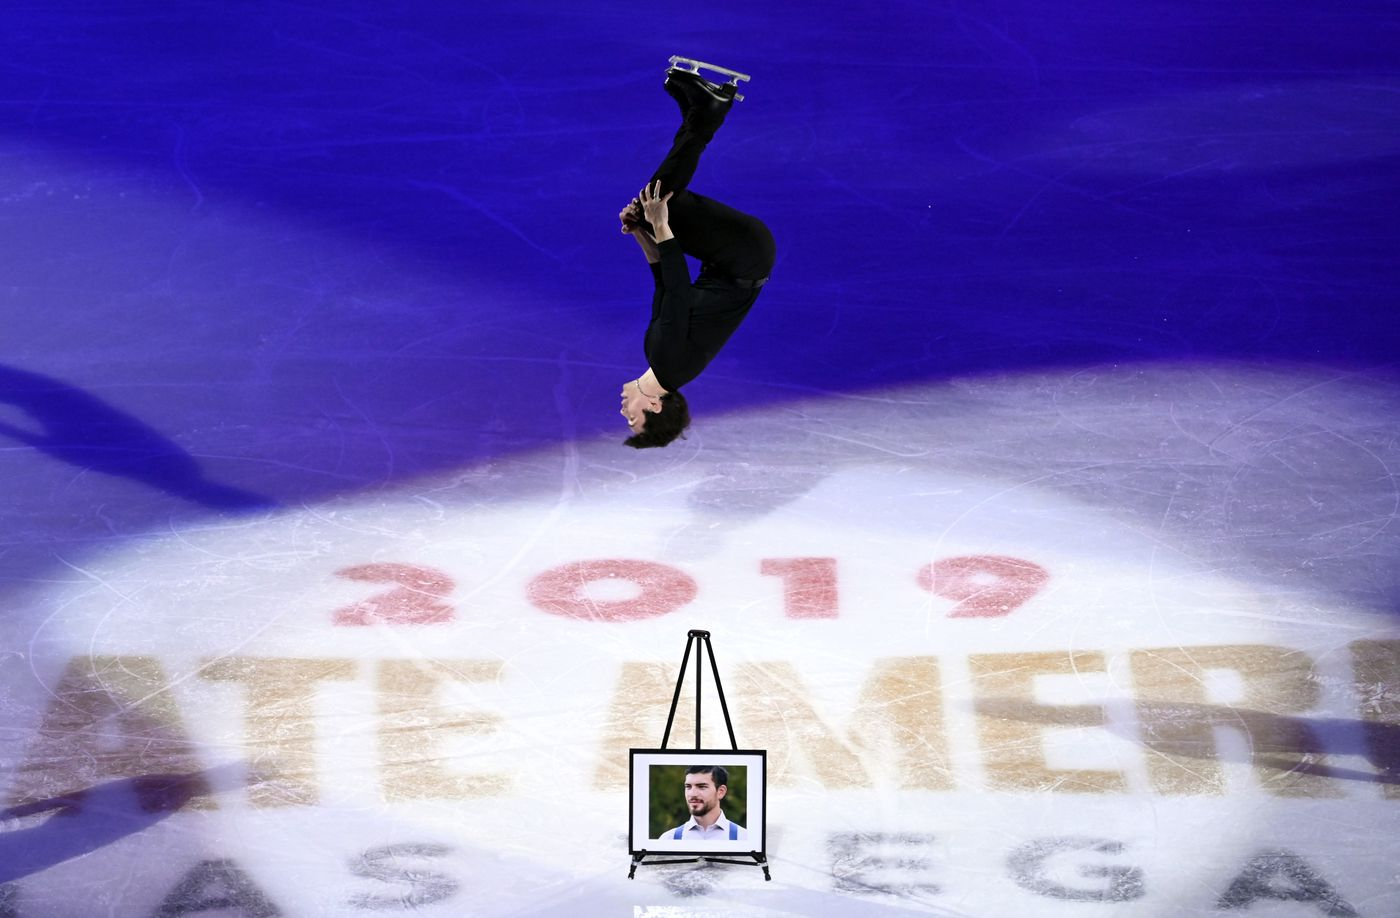 Keegan Messing performs in honor of his late brother Paxon during the International Skating Union Grand Prix of Figure Skating Series exhibition Sunday, Oct. 20, 2019, in Las Vegas. (AP Photo/David Becker)